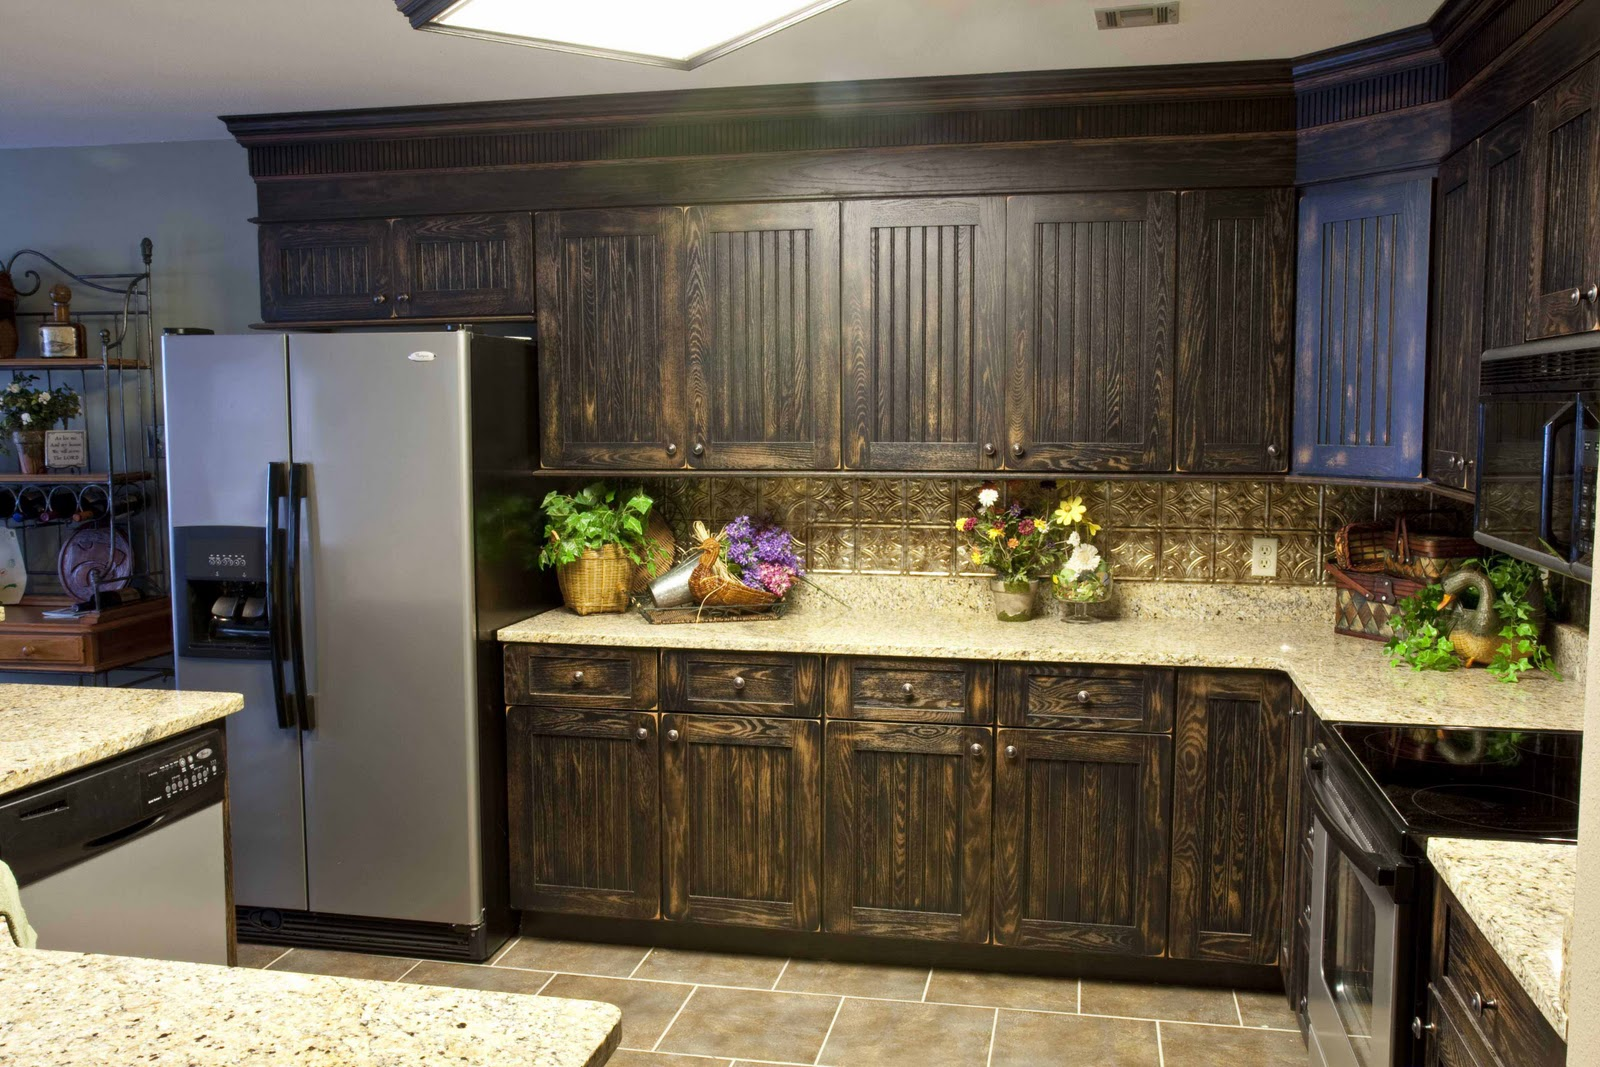 Diy Kitchen Cabinet Refacing Ideas | MyCoffeepot.Org on kitchen flooring ideas, kitchen showroom ideas, kitchen doors ideas, kitchen canister ideas, kitchen furniture ideas, kitchen paint ideas, kitchen hardware ideas, diy kitchen ideas, kitchen windows ideas, custom kitchen ideas, contemporary kitchen ideas, kitchen knobs ideas, kitchen remodels ideas, kitchen counters ideas, organized kitchen ideas, kitchen planning ideas, kitchen walls ideas, kitchen refinishing ideas, kitchen restoration ideas, kitchen appliances ideas,